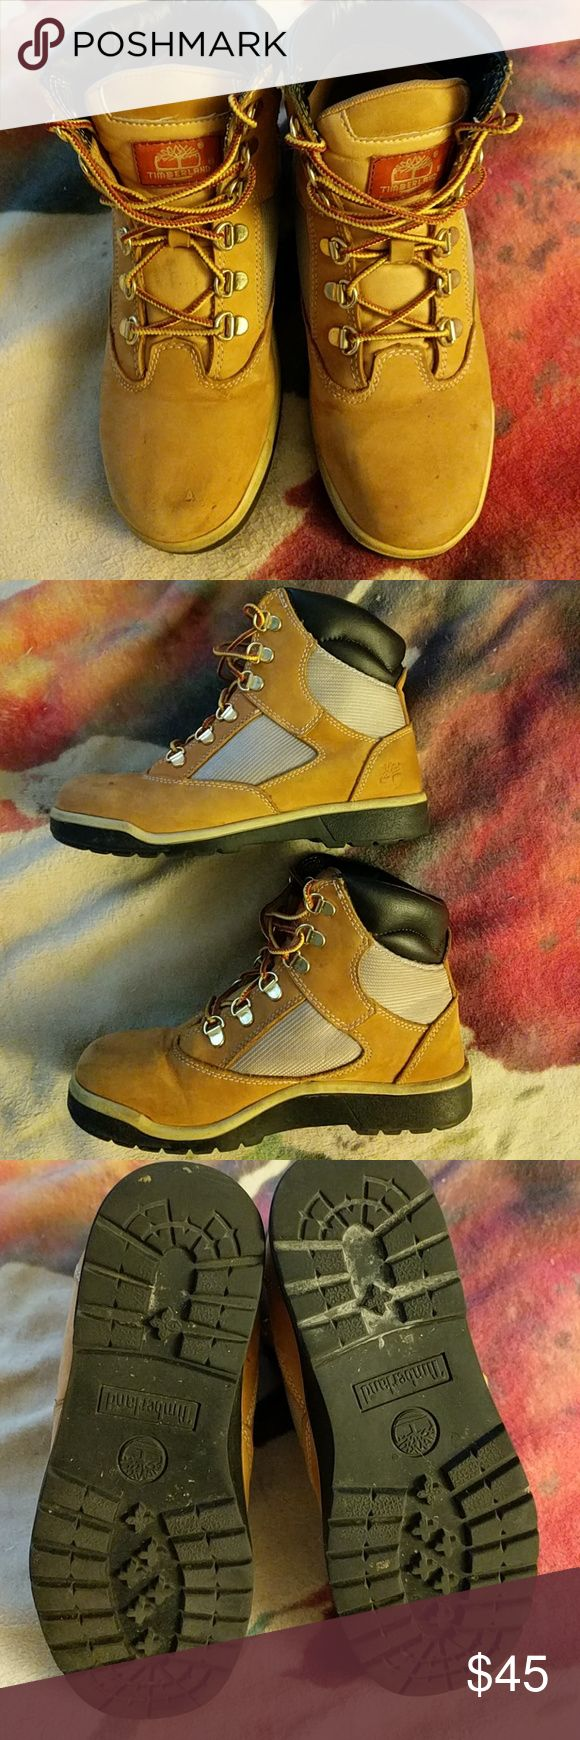 ⚡SALE⚡  Timberland Boots -Tan and beige leather boots -Size 5 (boys), fits 6.5-7 Women's -Great condition, small scuff on toe. Timberland Shoes Lace Up Boots